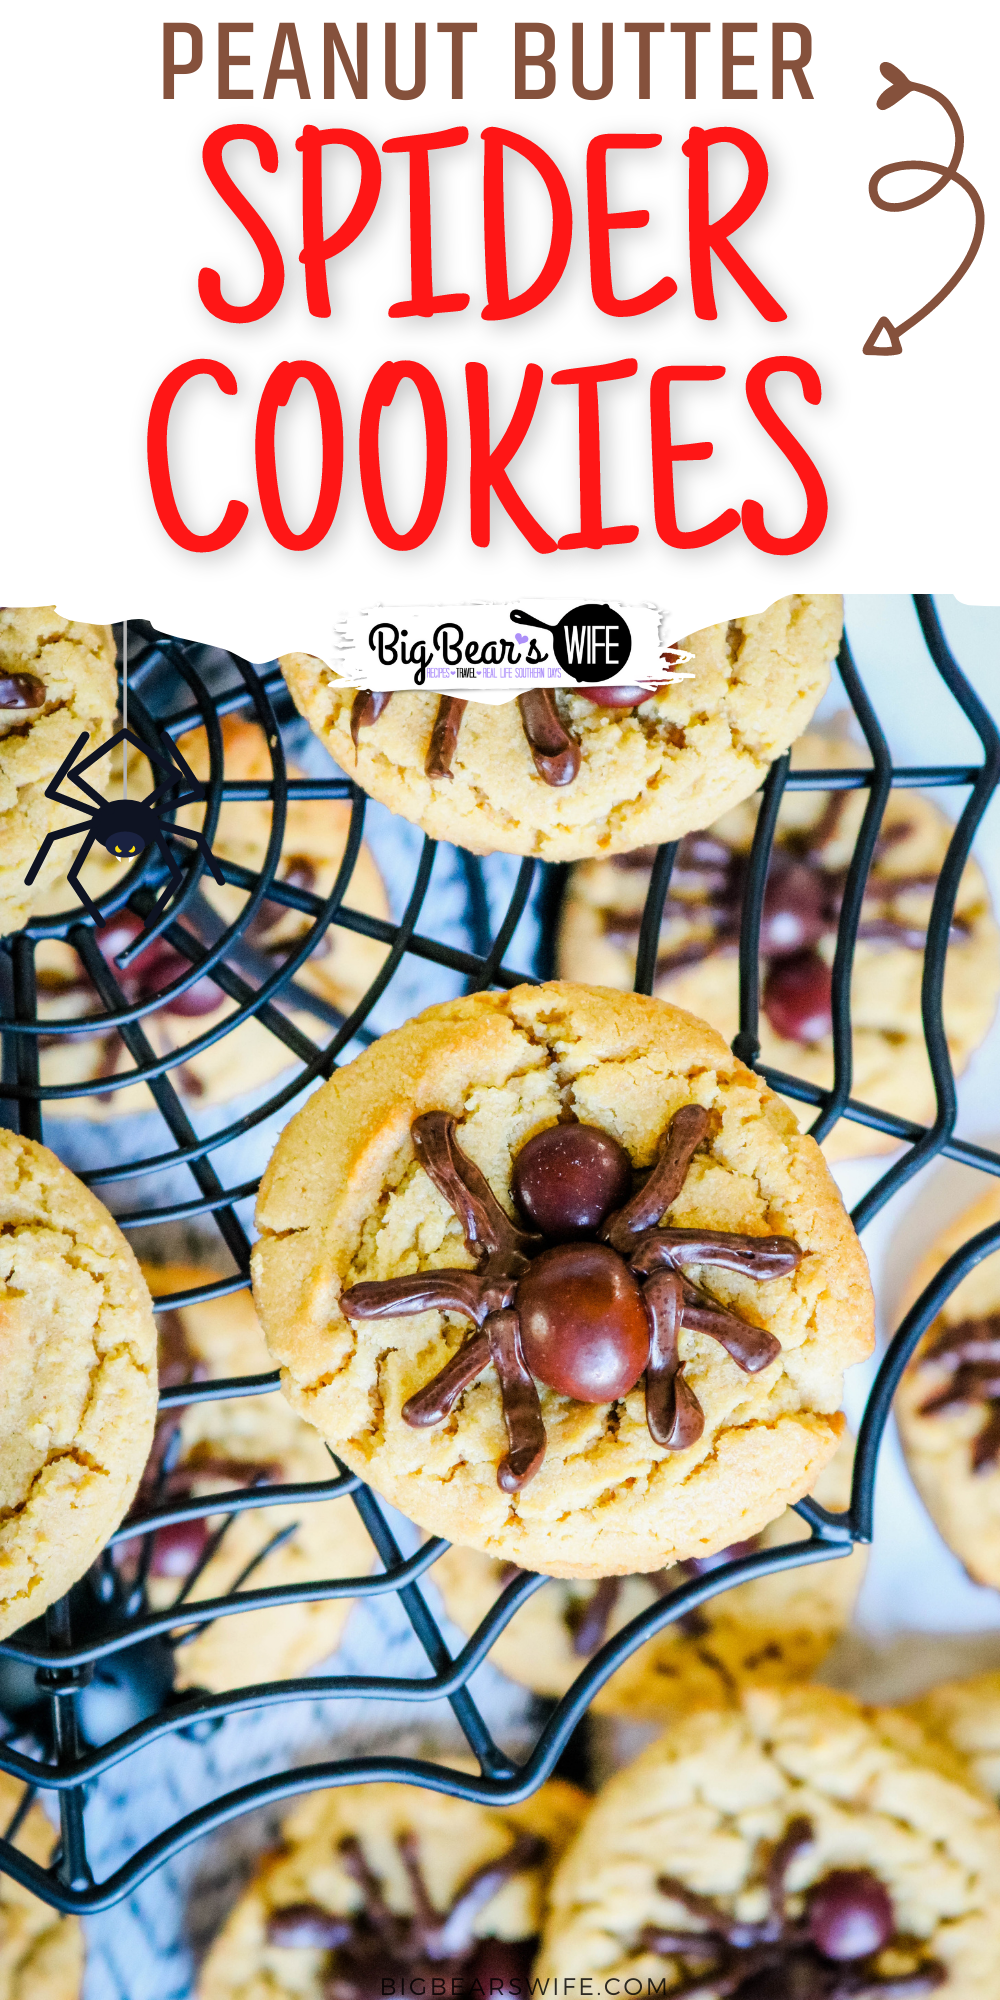 This Peanut Butter Spider Cookies recipe is an easy Halloween cookie recipe! These easy spider cookies are based on my favorite Peanut Butter Blossoms and the spiders are made with brown M&Ms and melted chocolate chips!  via @bigbearswife